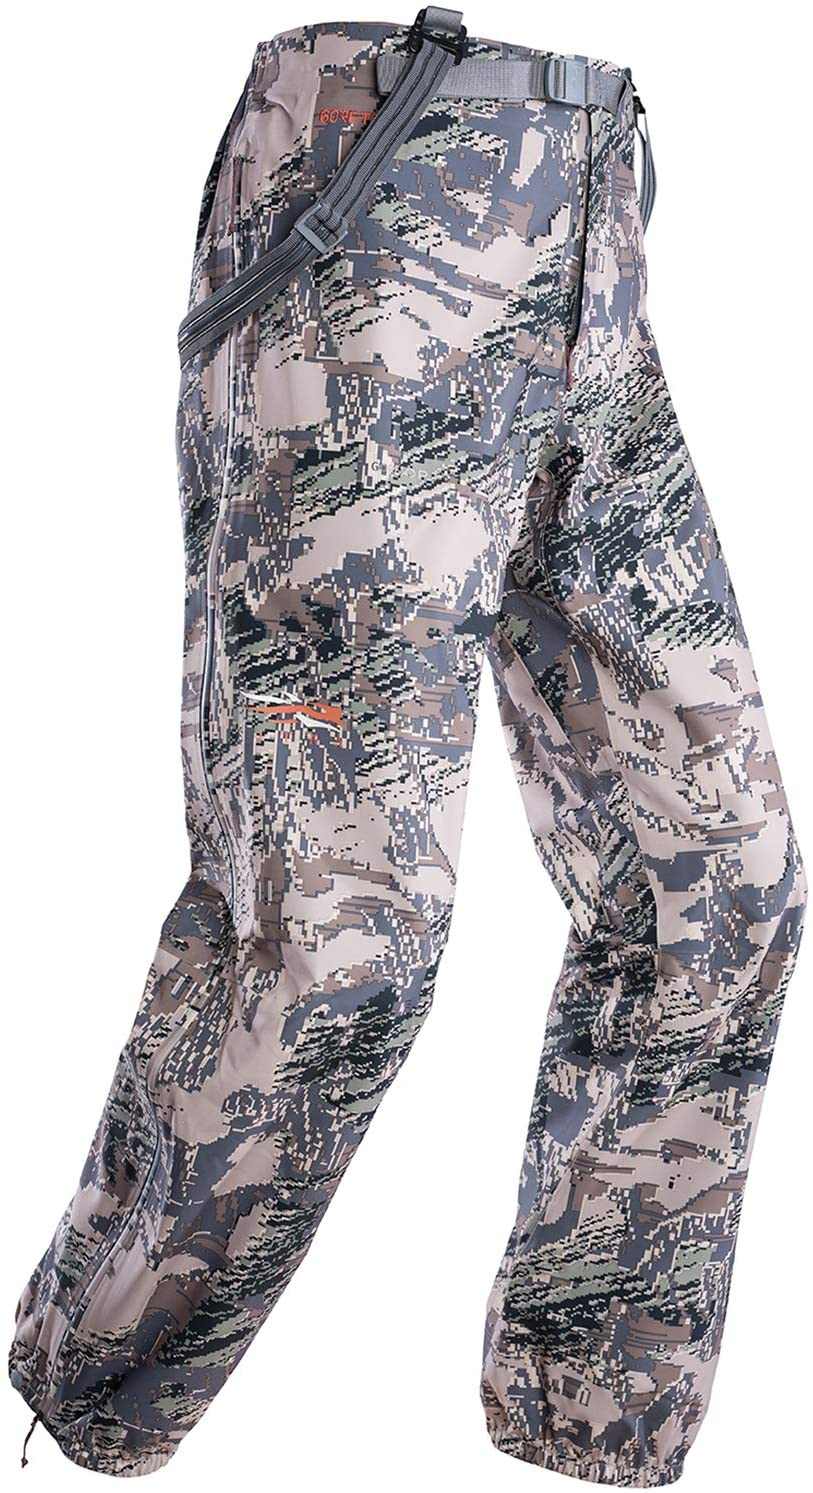 SITKA Gear New for 2019 Cloudburst Pant Optifade Open Country XXX Large